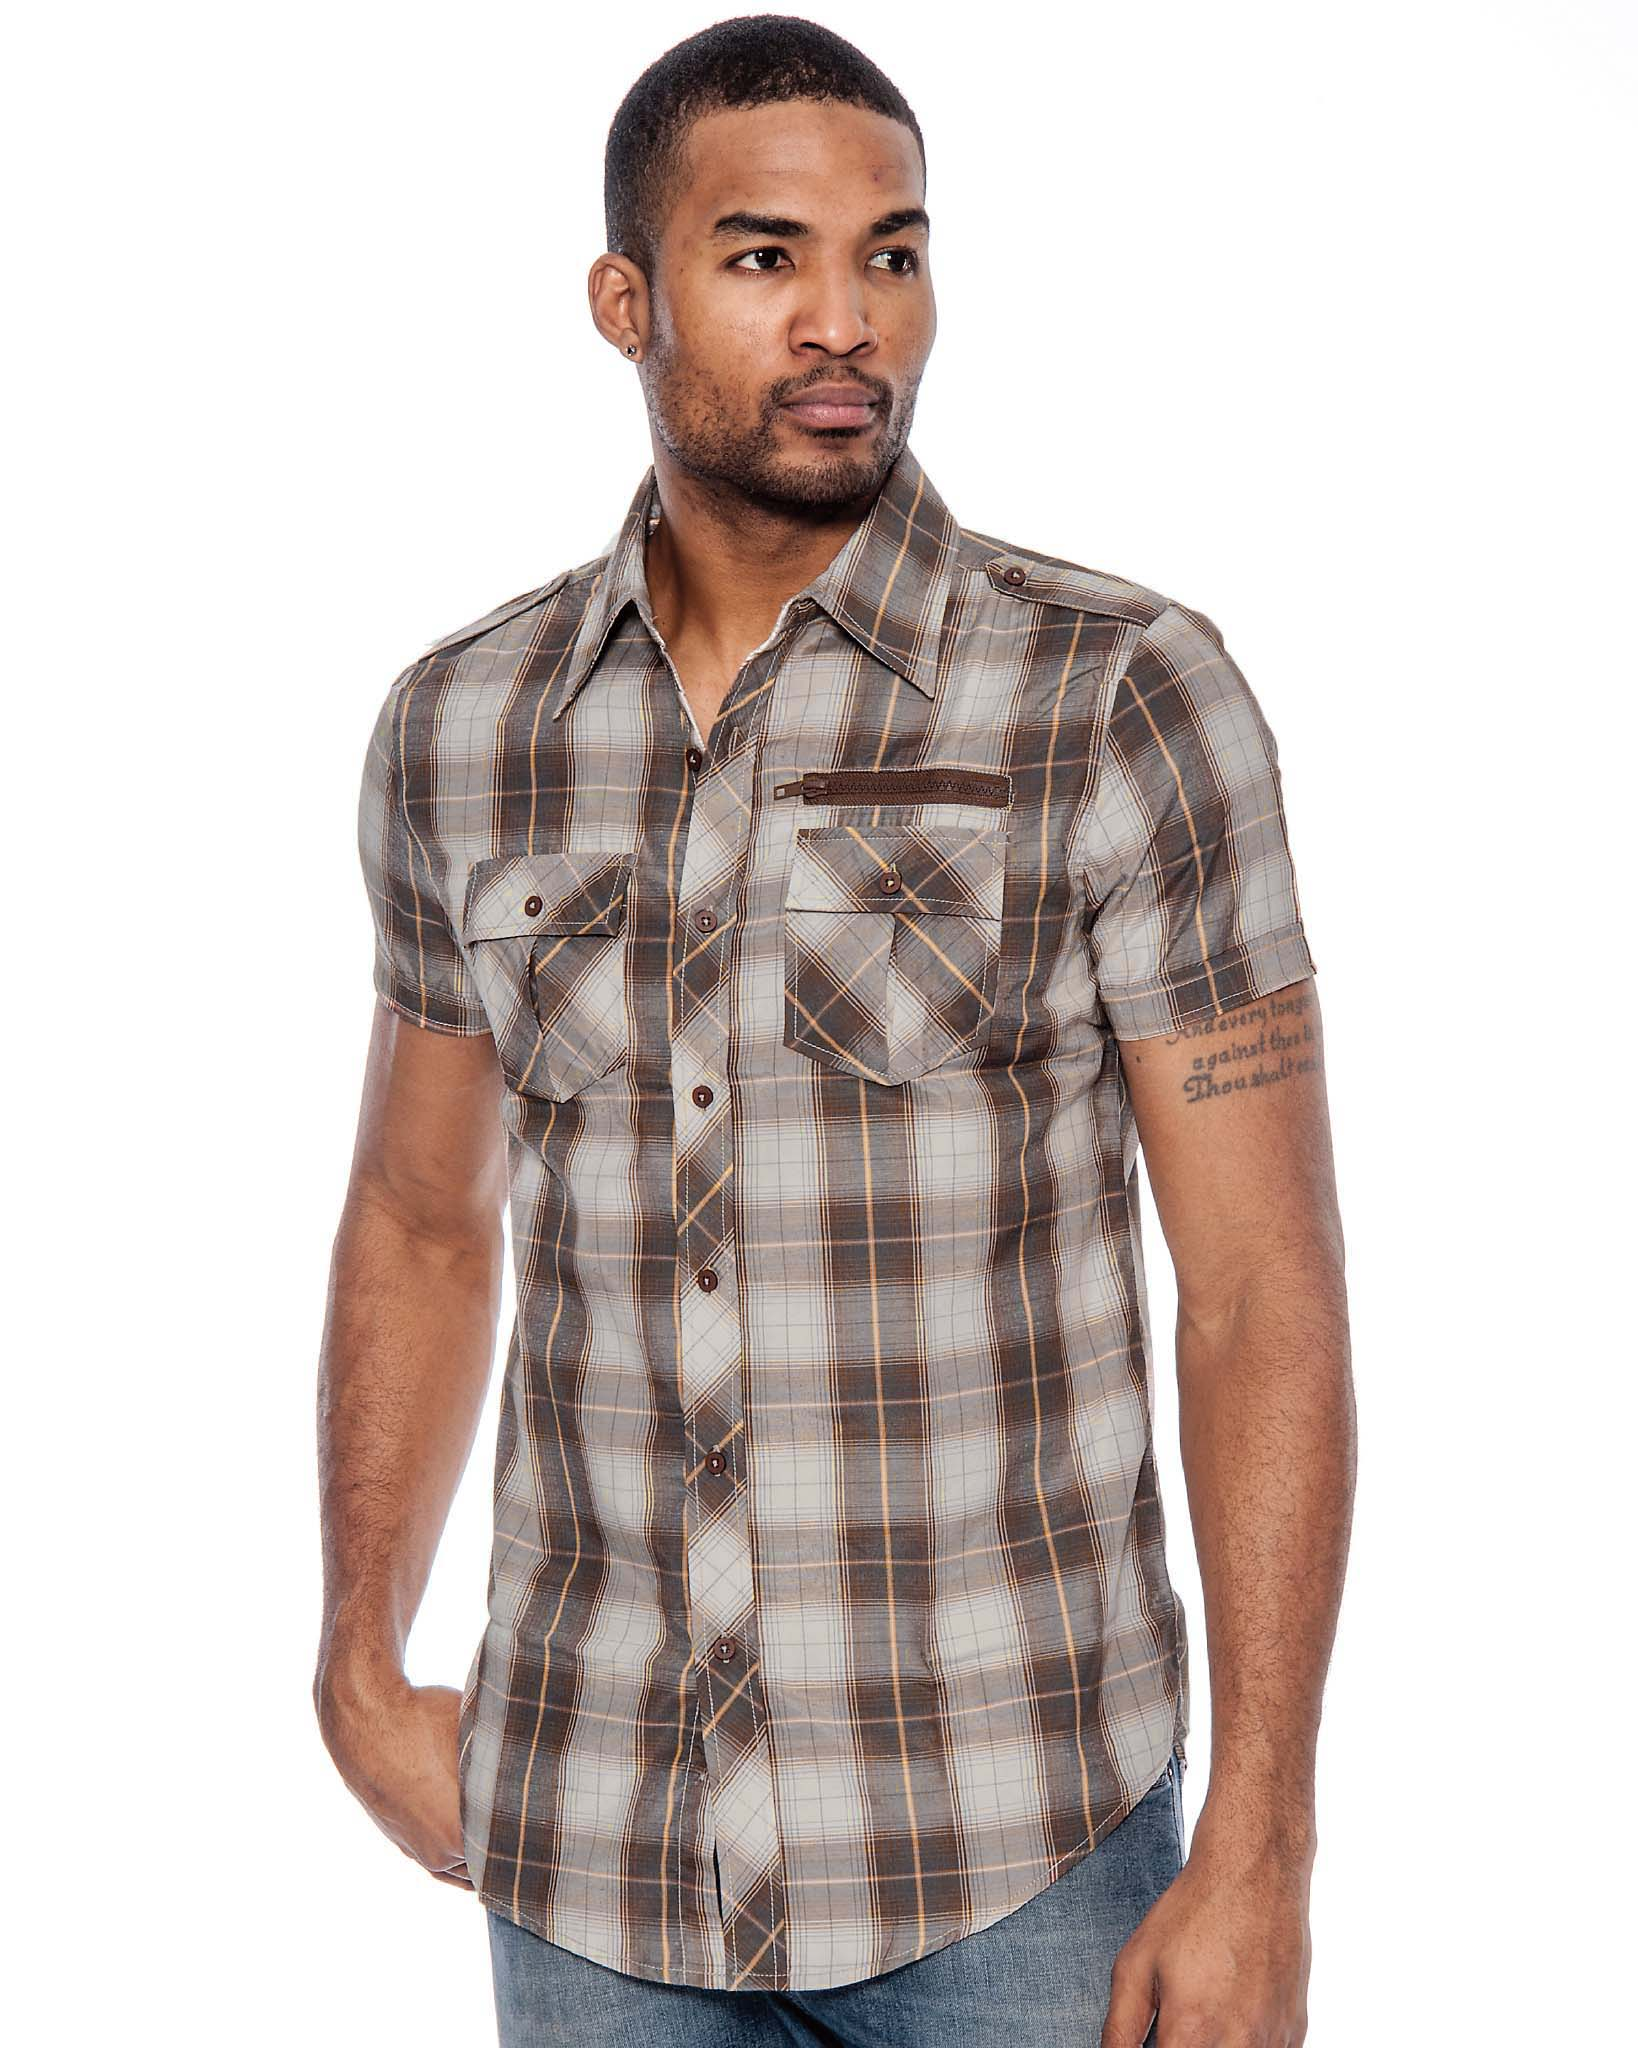 True Rock Men's Ace Slim Fit Plaid Button-Down Shirt | eBay